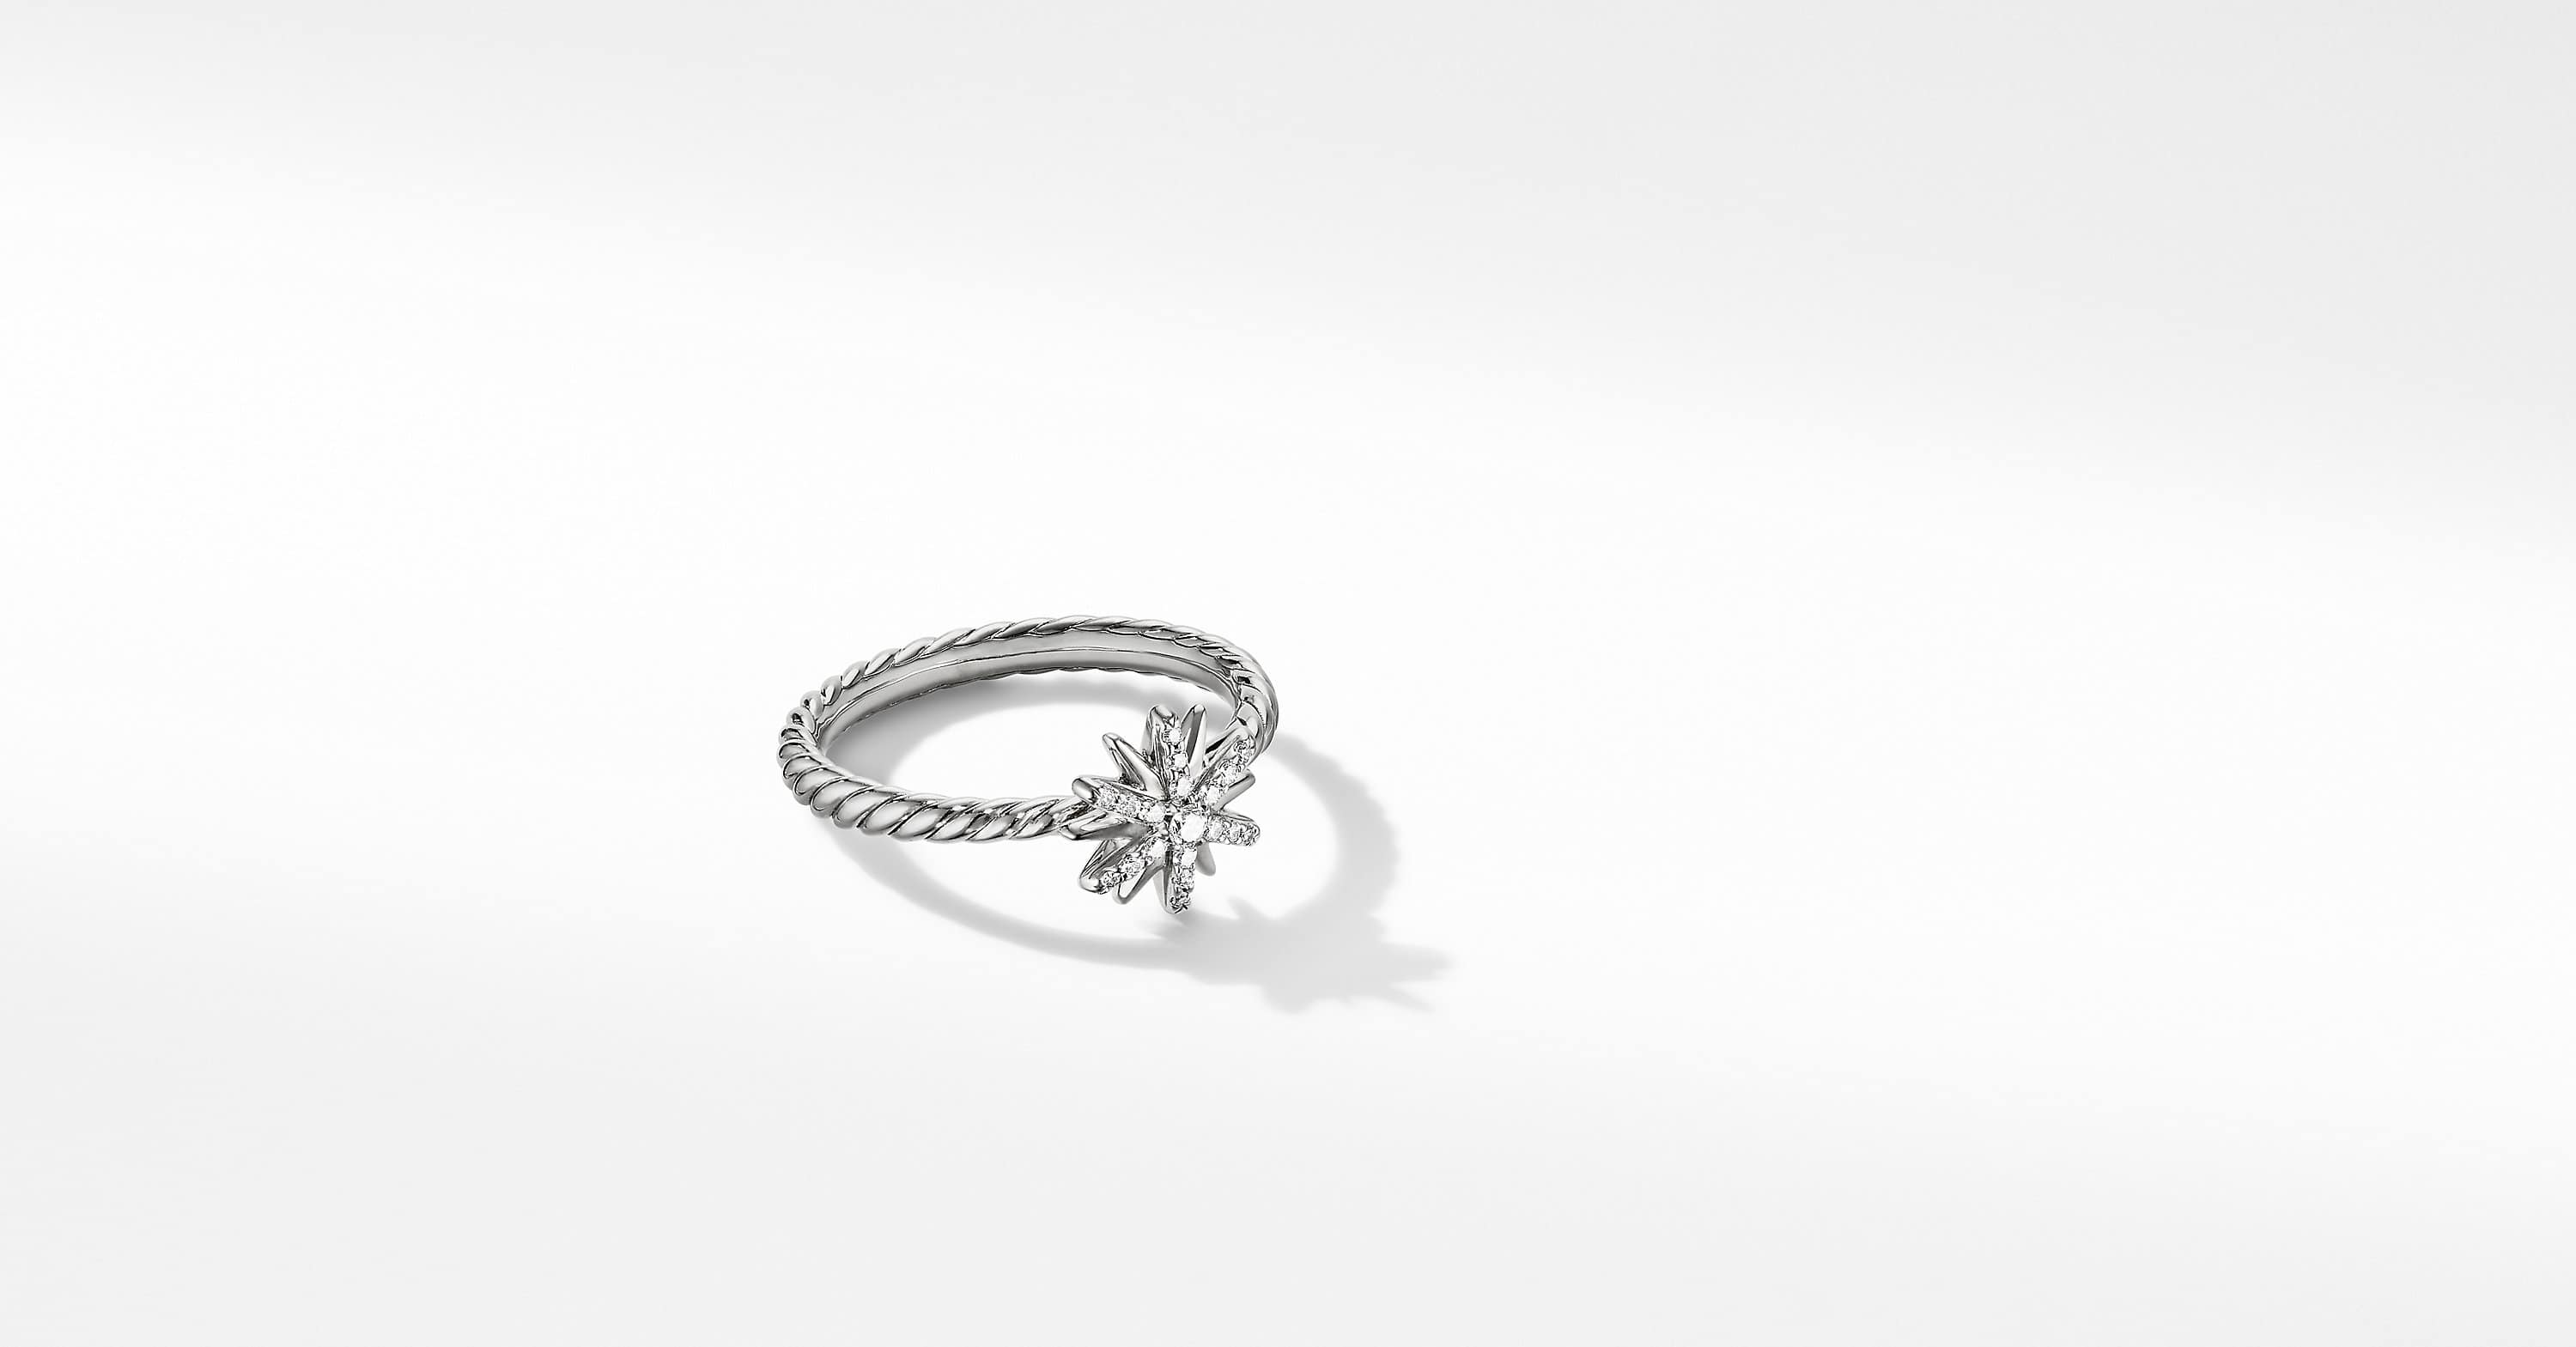 Petite Starburst Station Ring with Diamonds, 10mm